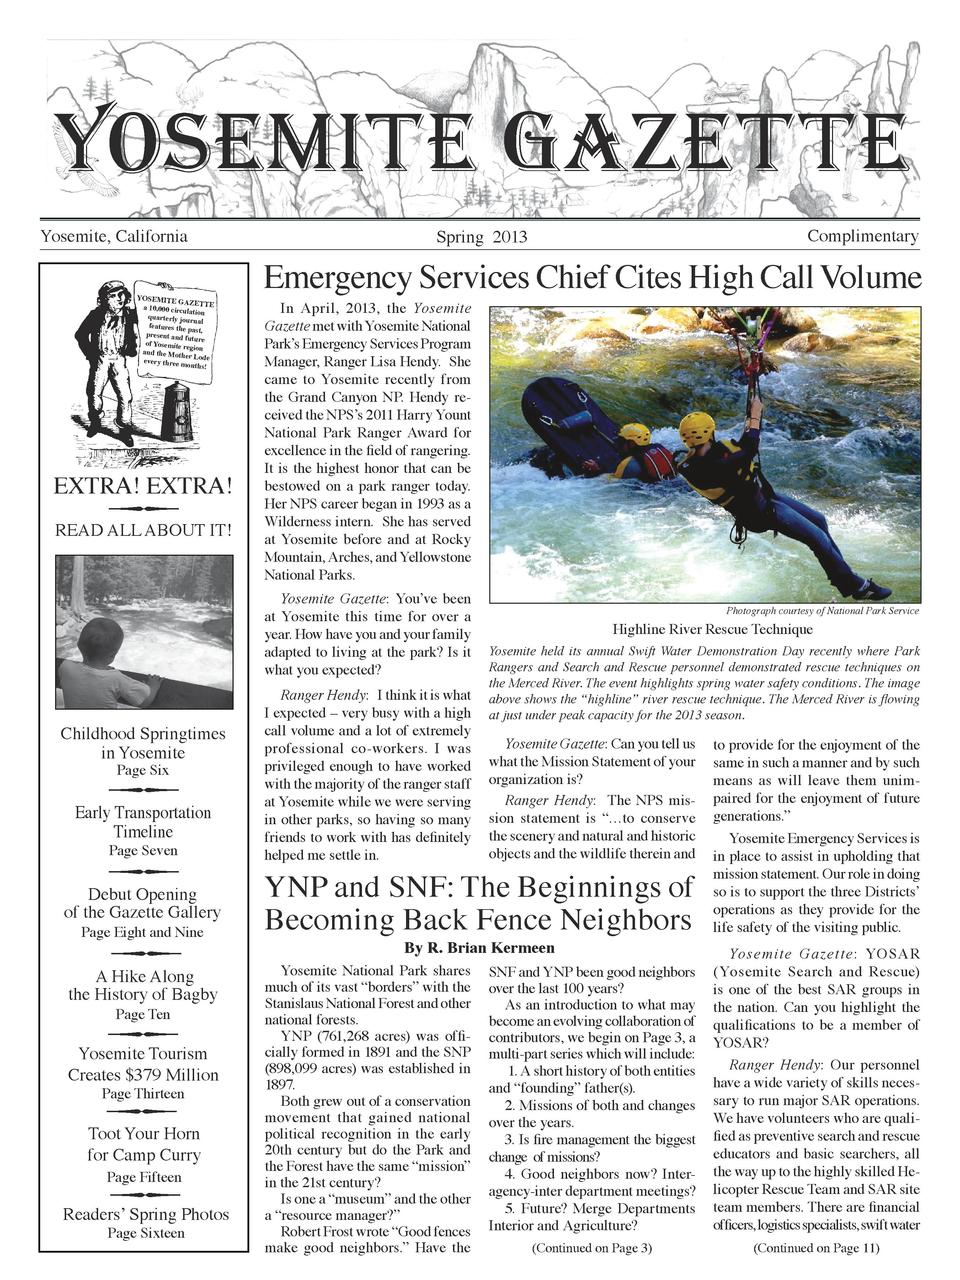 YOSEMITE GAZETTE Yosemite, California YOSEMITE GAZE a 10,000 circul TTE ation quarterly jou rnal features the past,   pres...